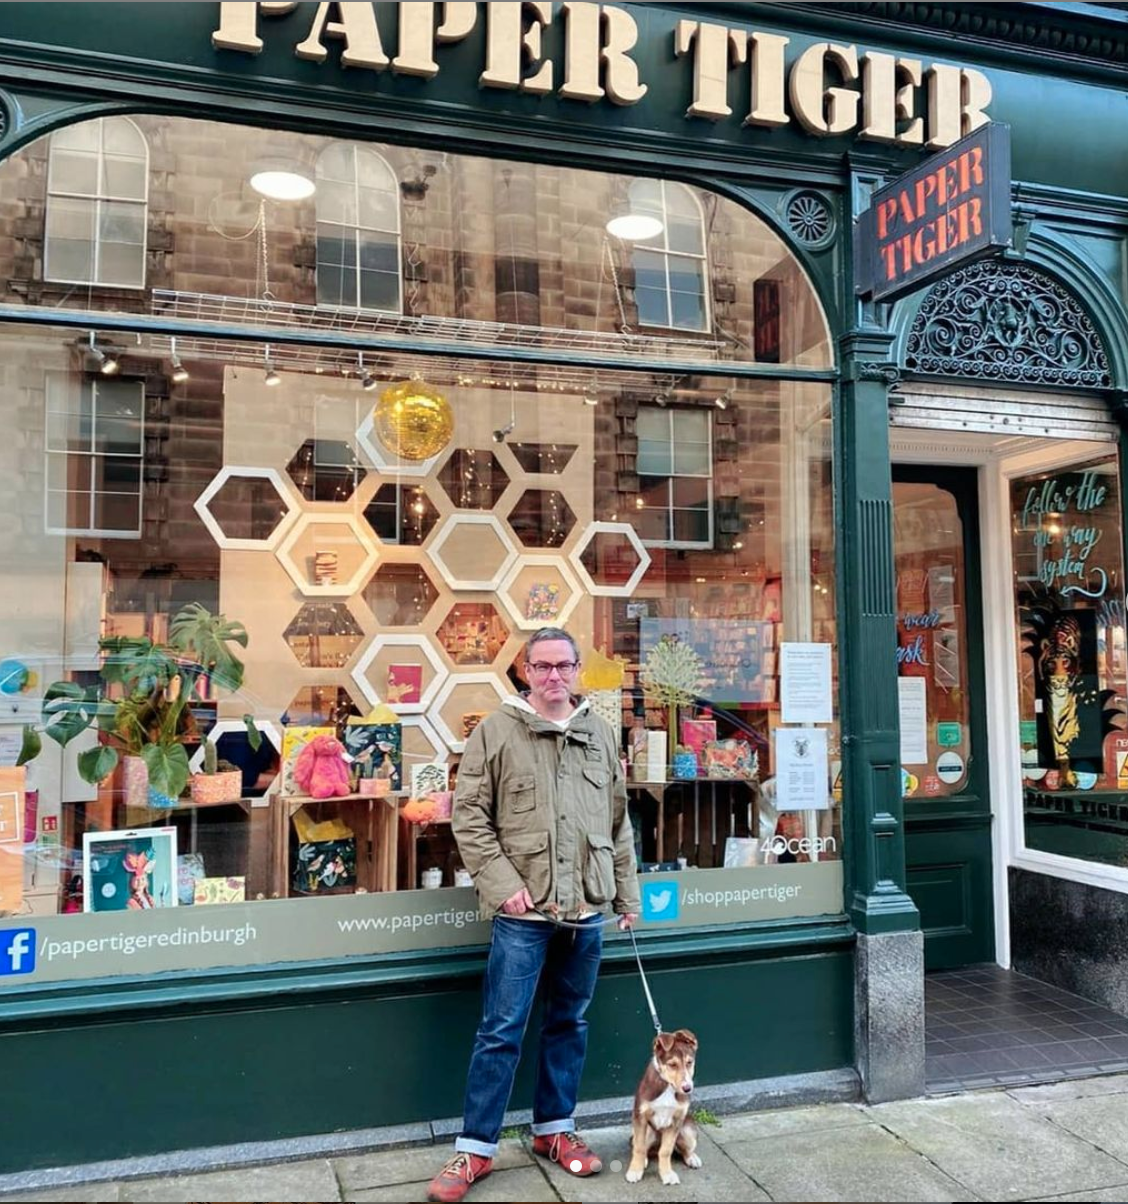 Above: Michael Apter outside one of the Paper Tiger shops with his puppy, Clementine.